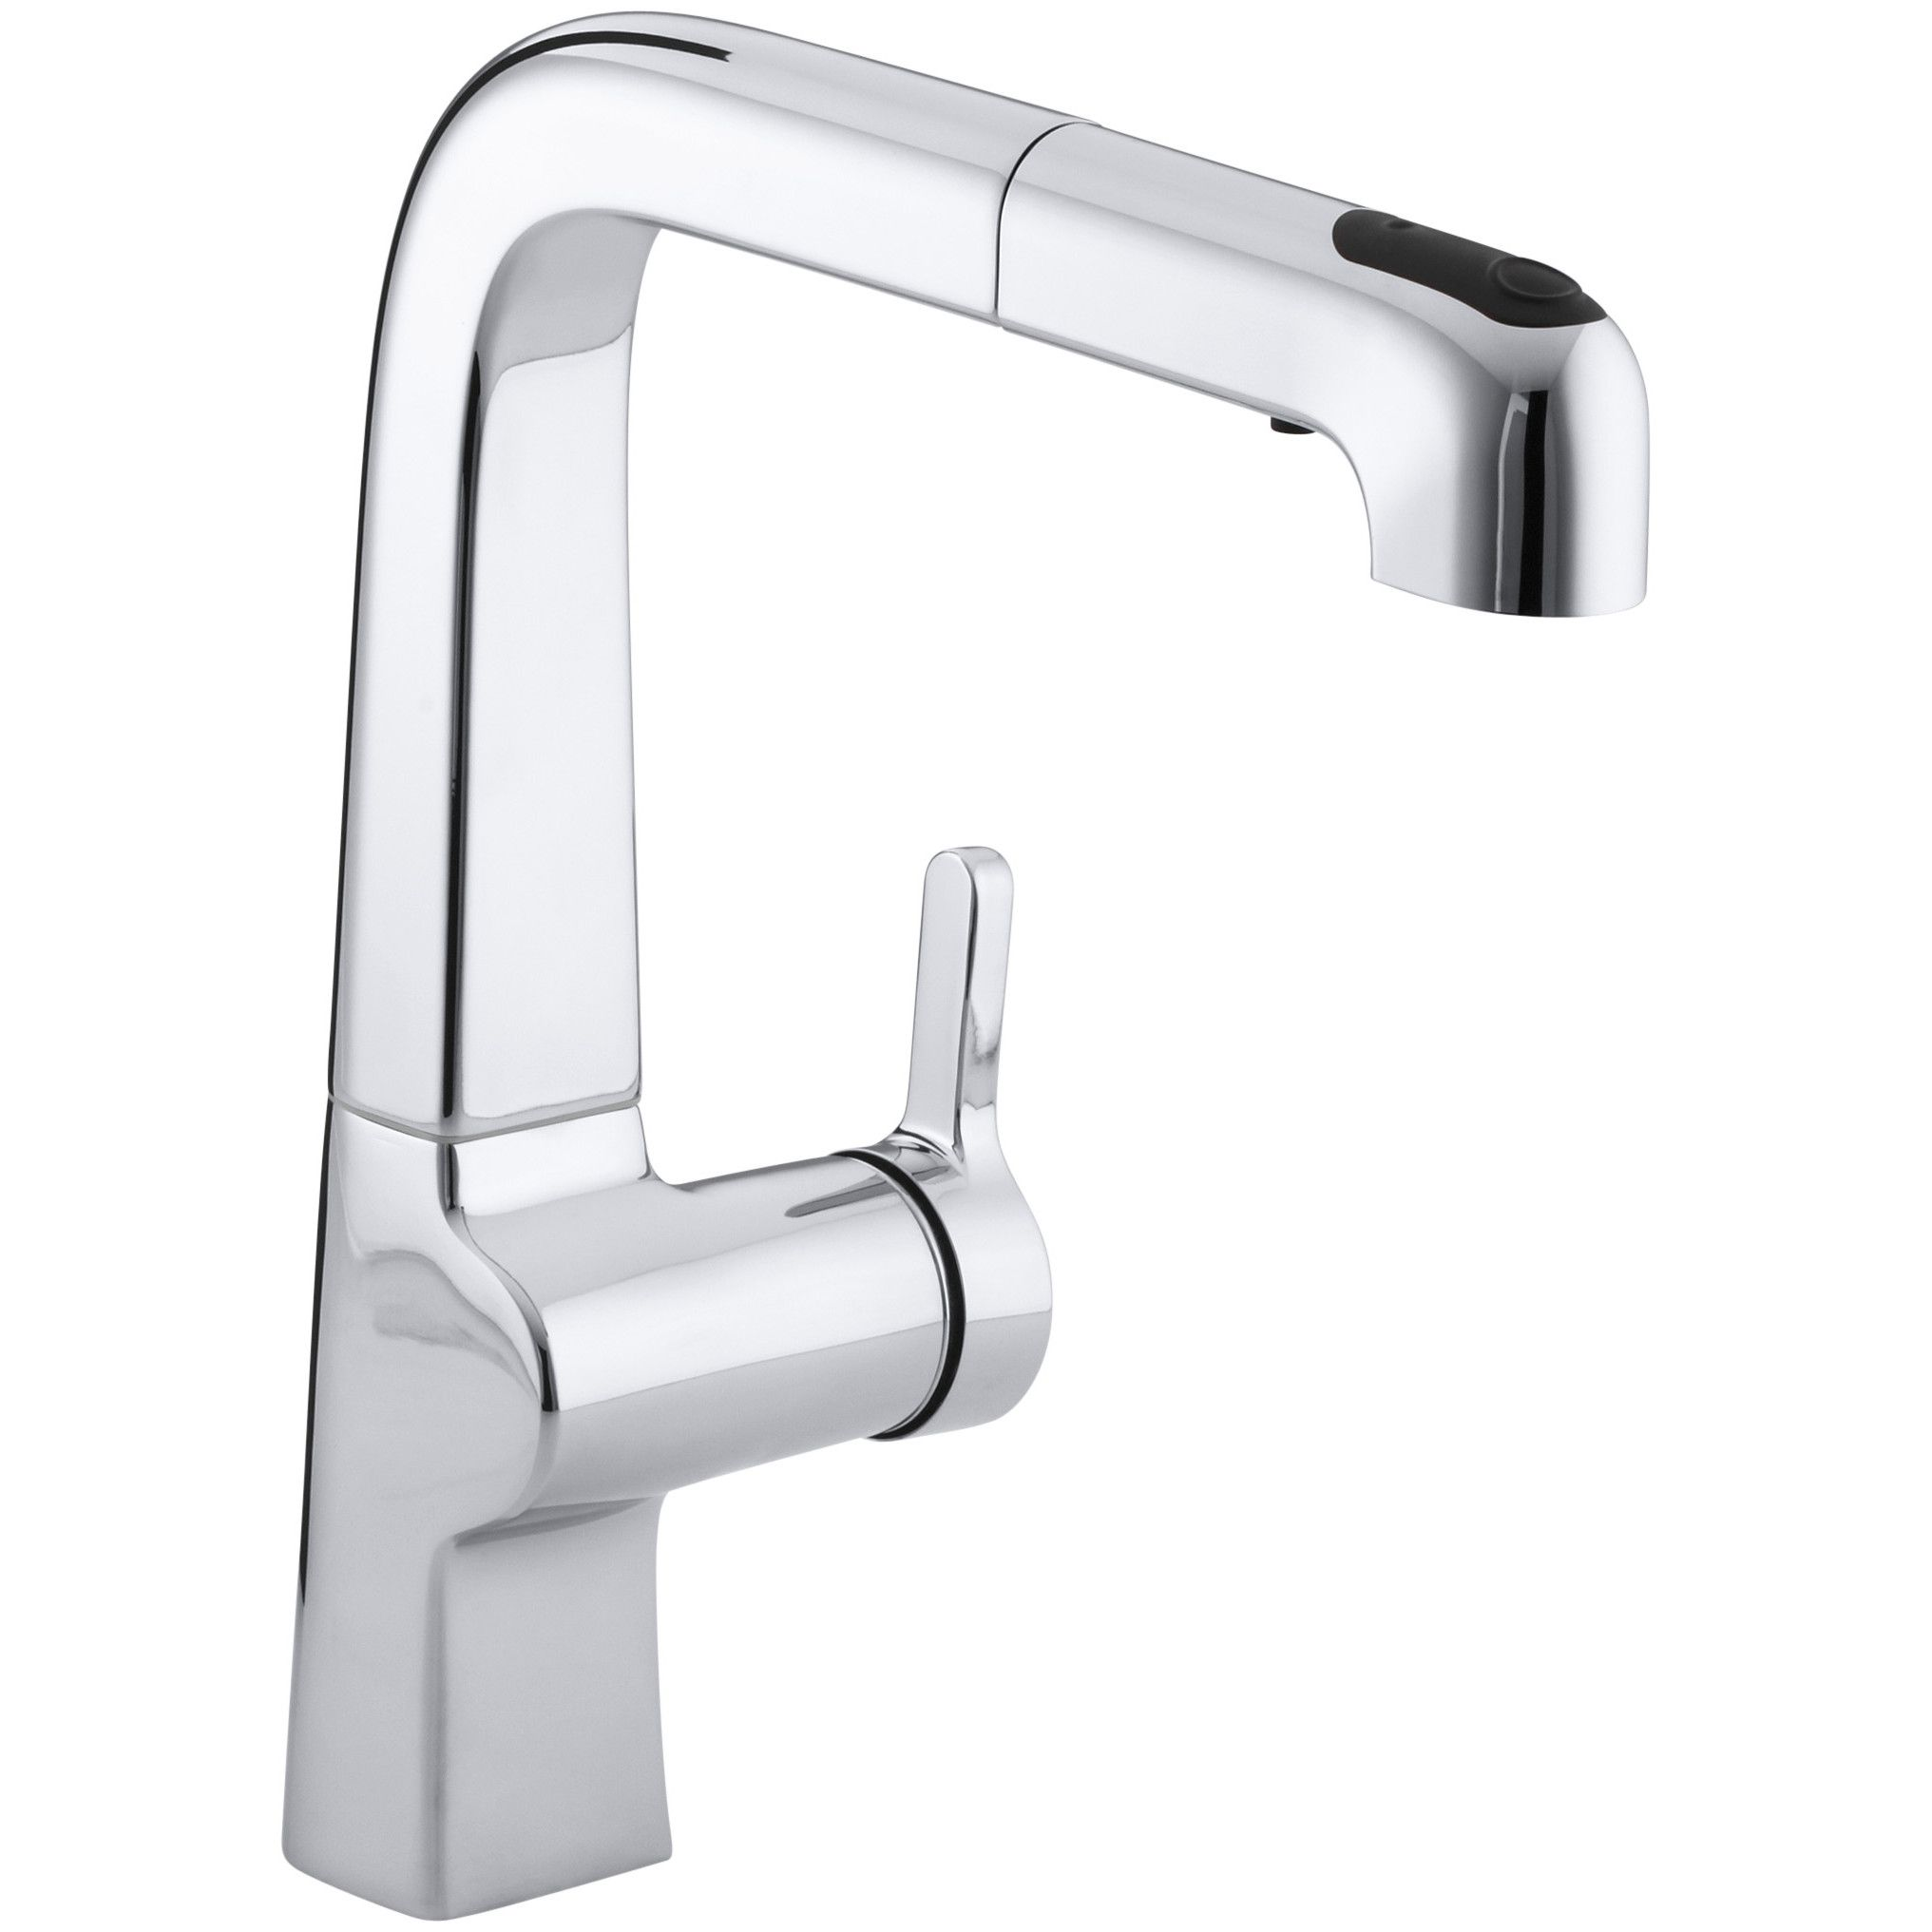 hole faucets sink dp with faucet artifacts k kitchen single function kohler larger view vs